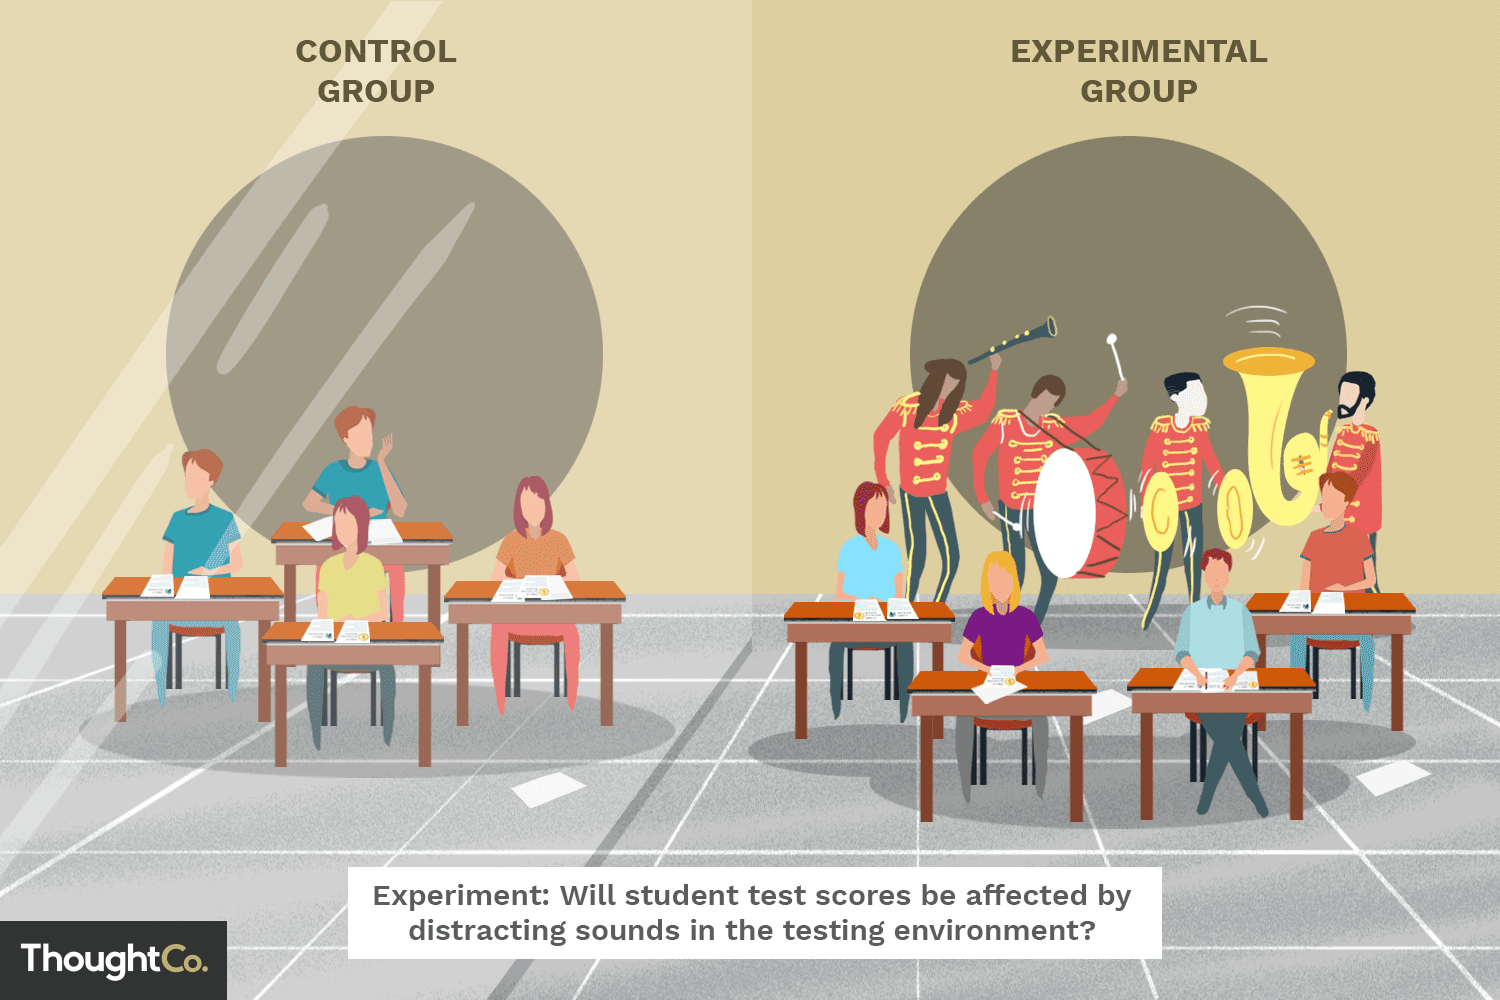 Control vs. Experimental Group How Do They Differ? (With